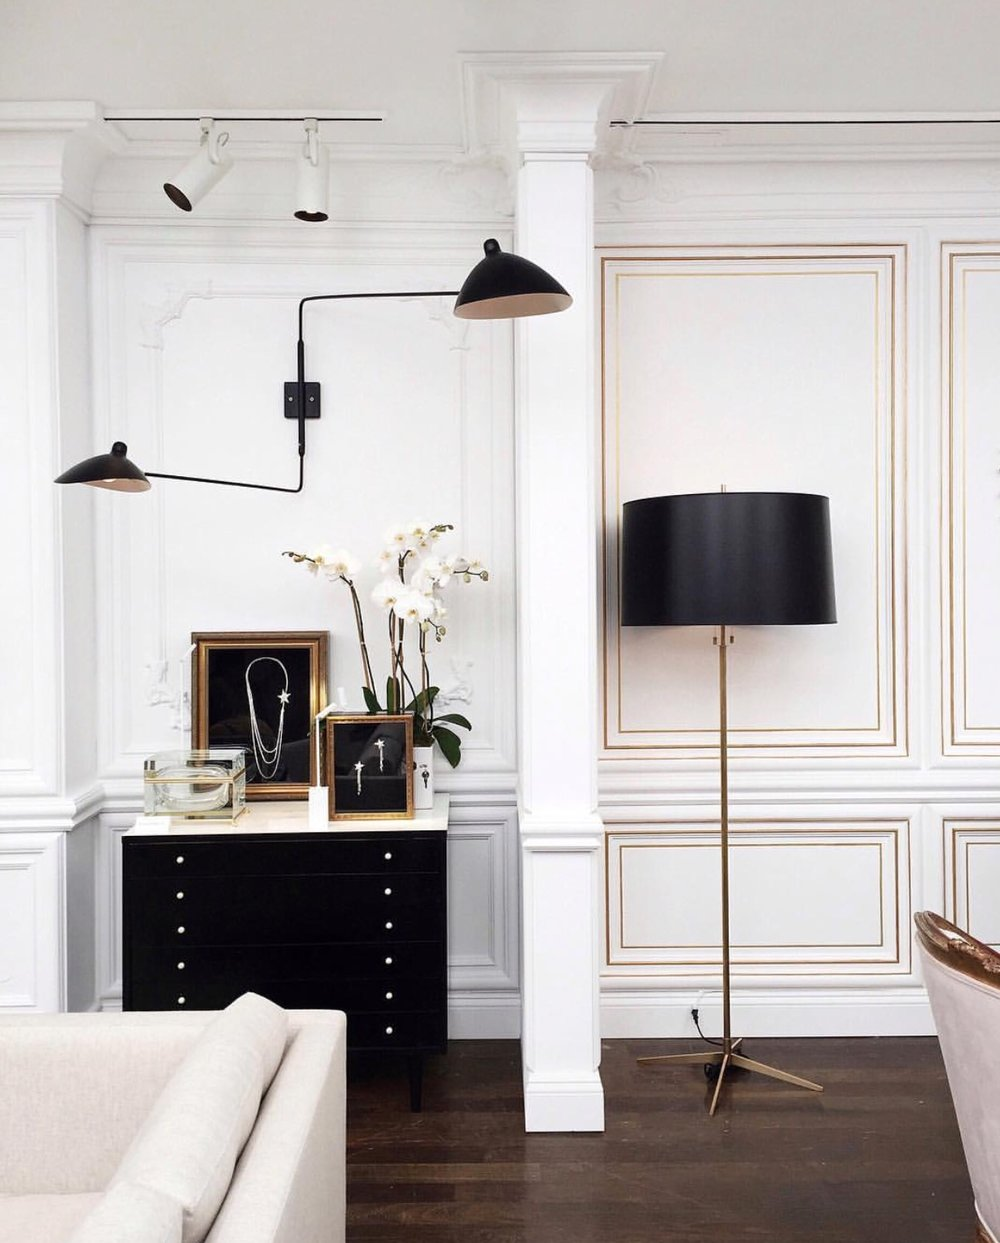 7 decorating rules inspired by Coco Chanel — The Decorista